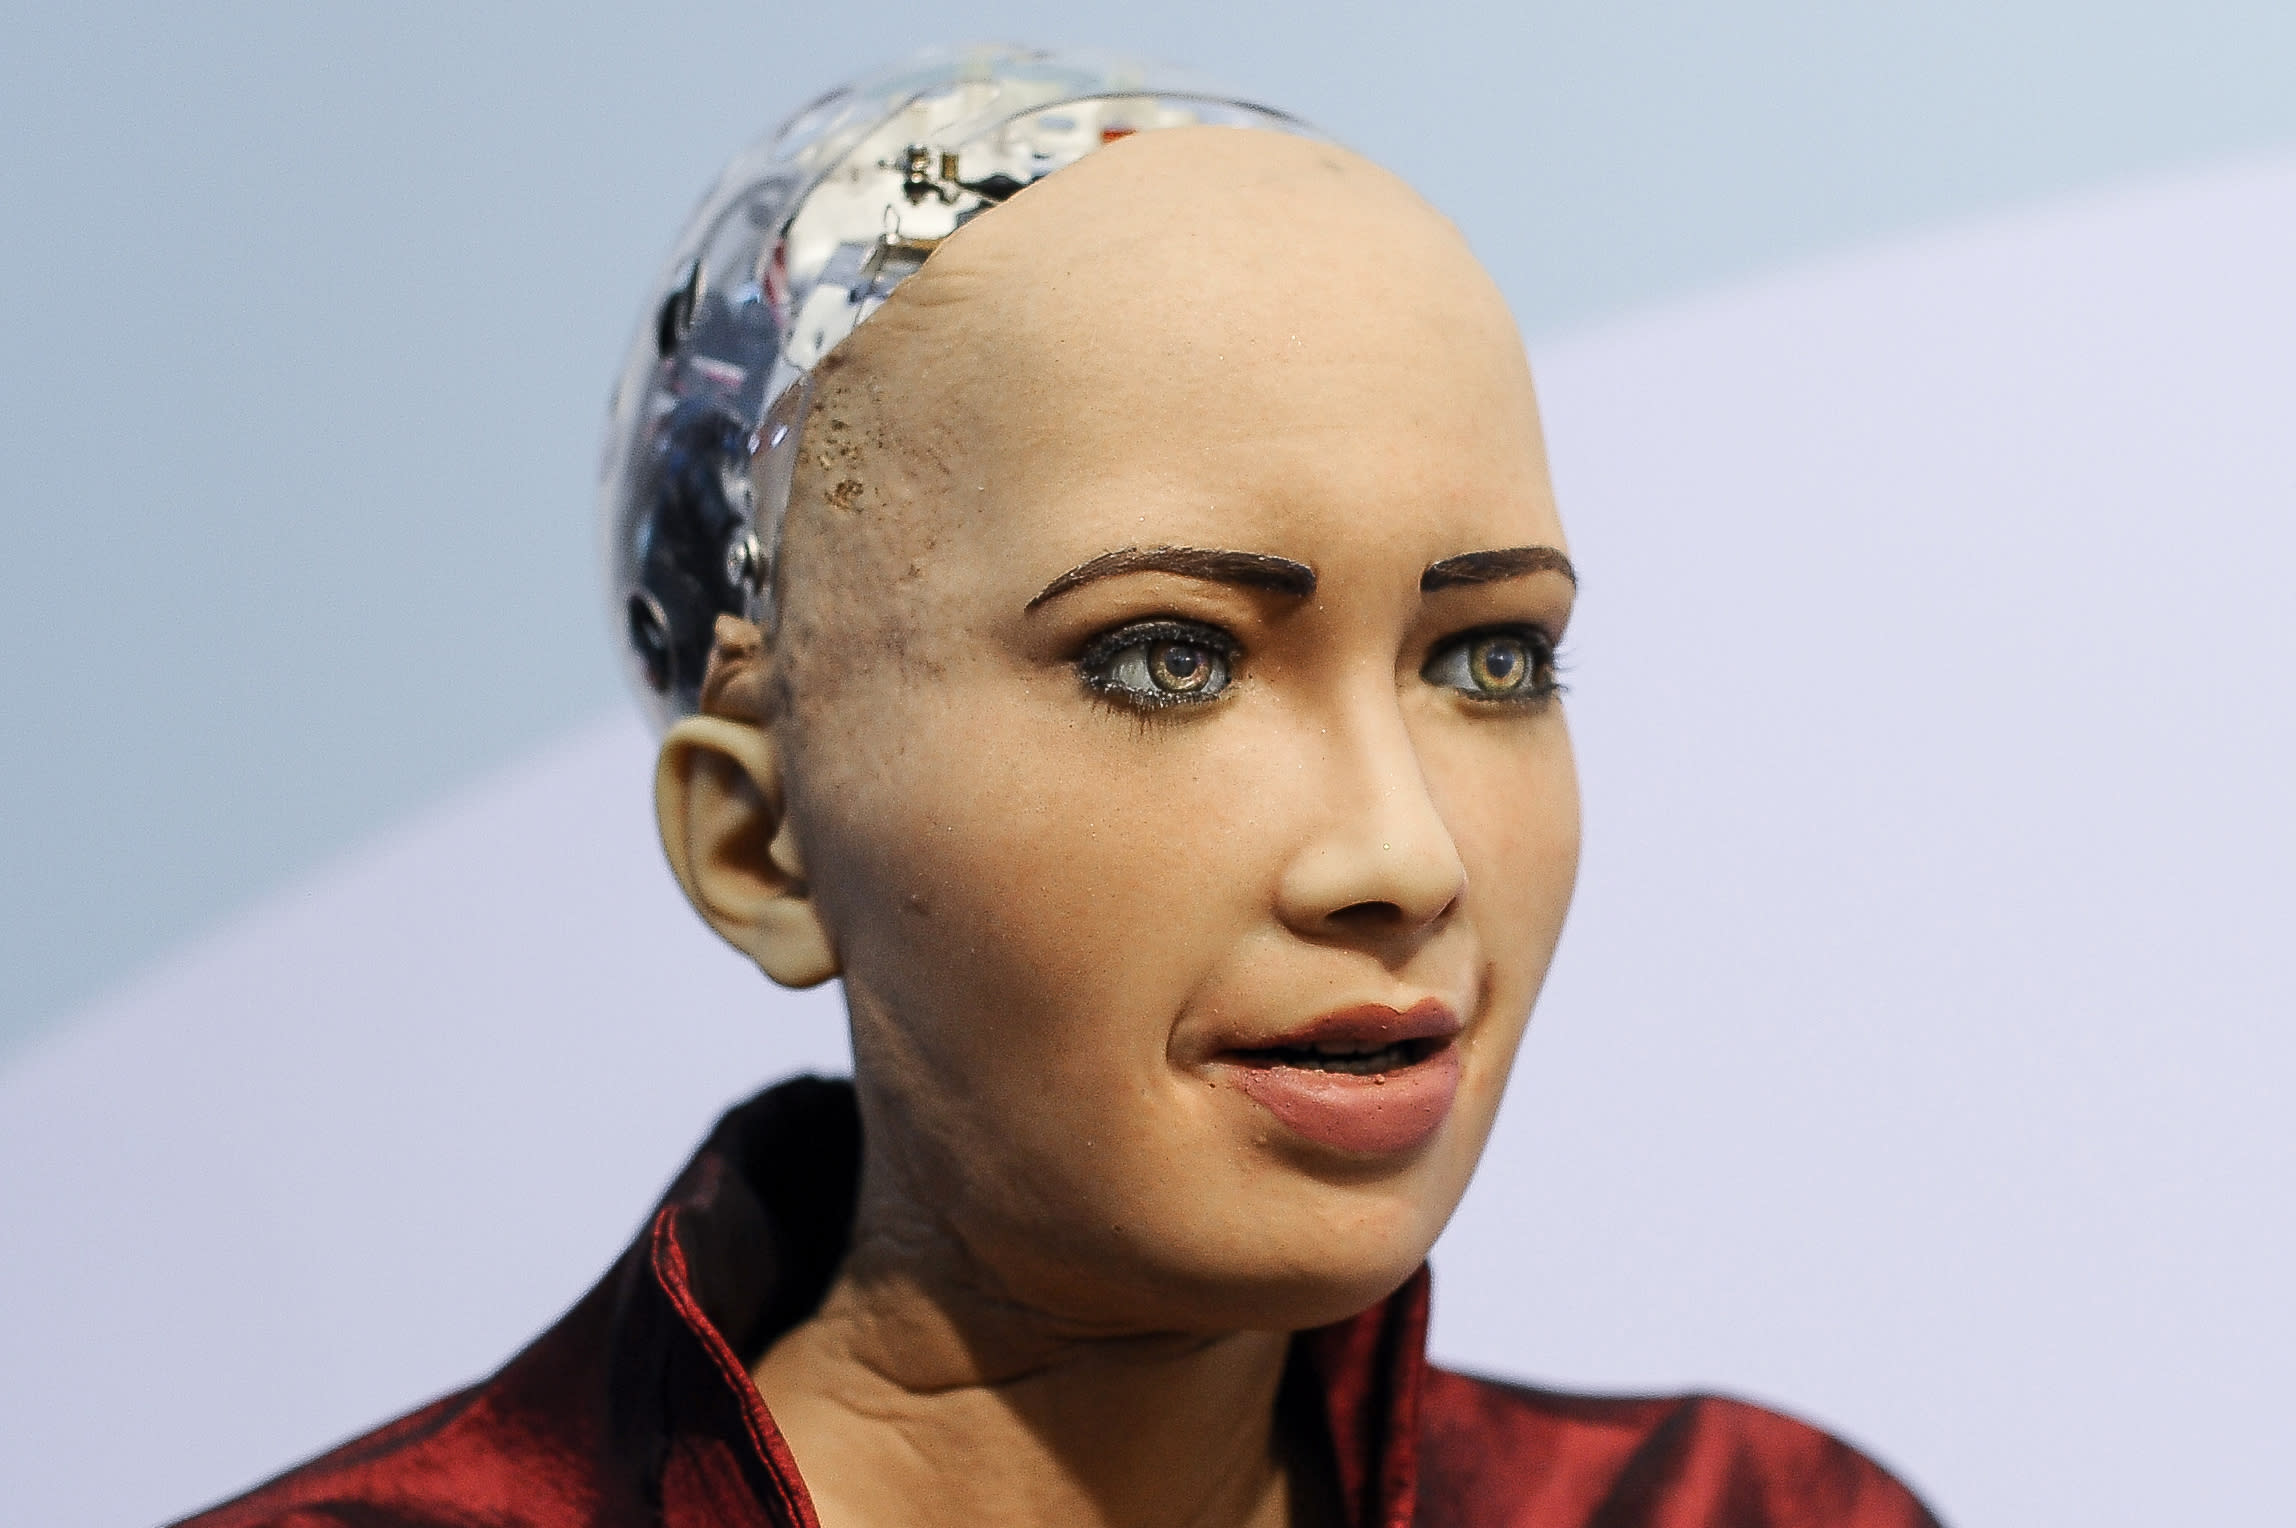 The world's most viral robot issues new warning: Tech